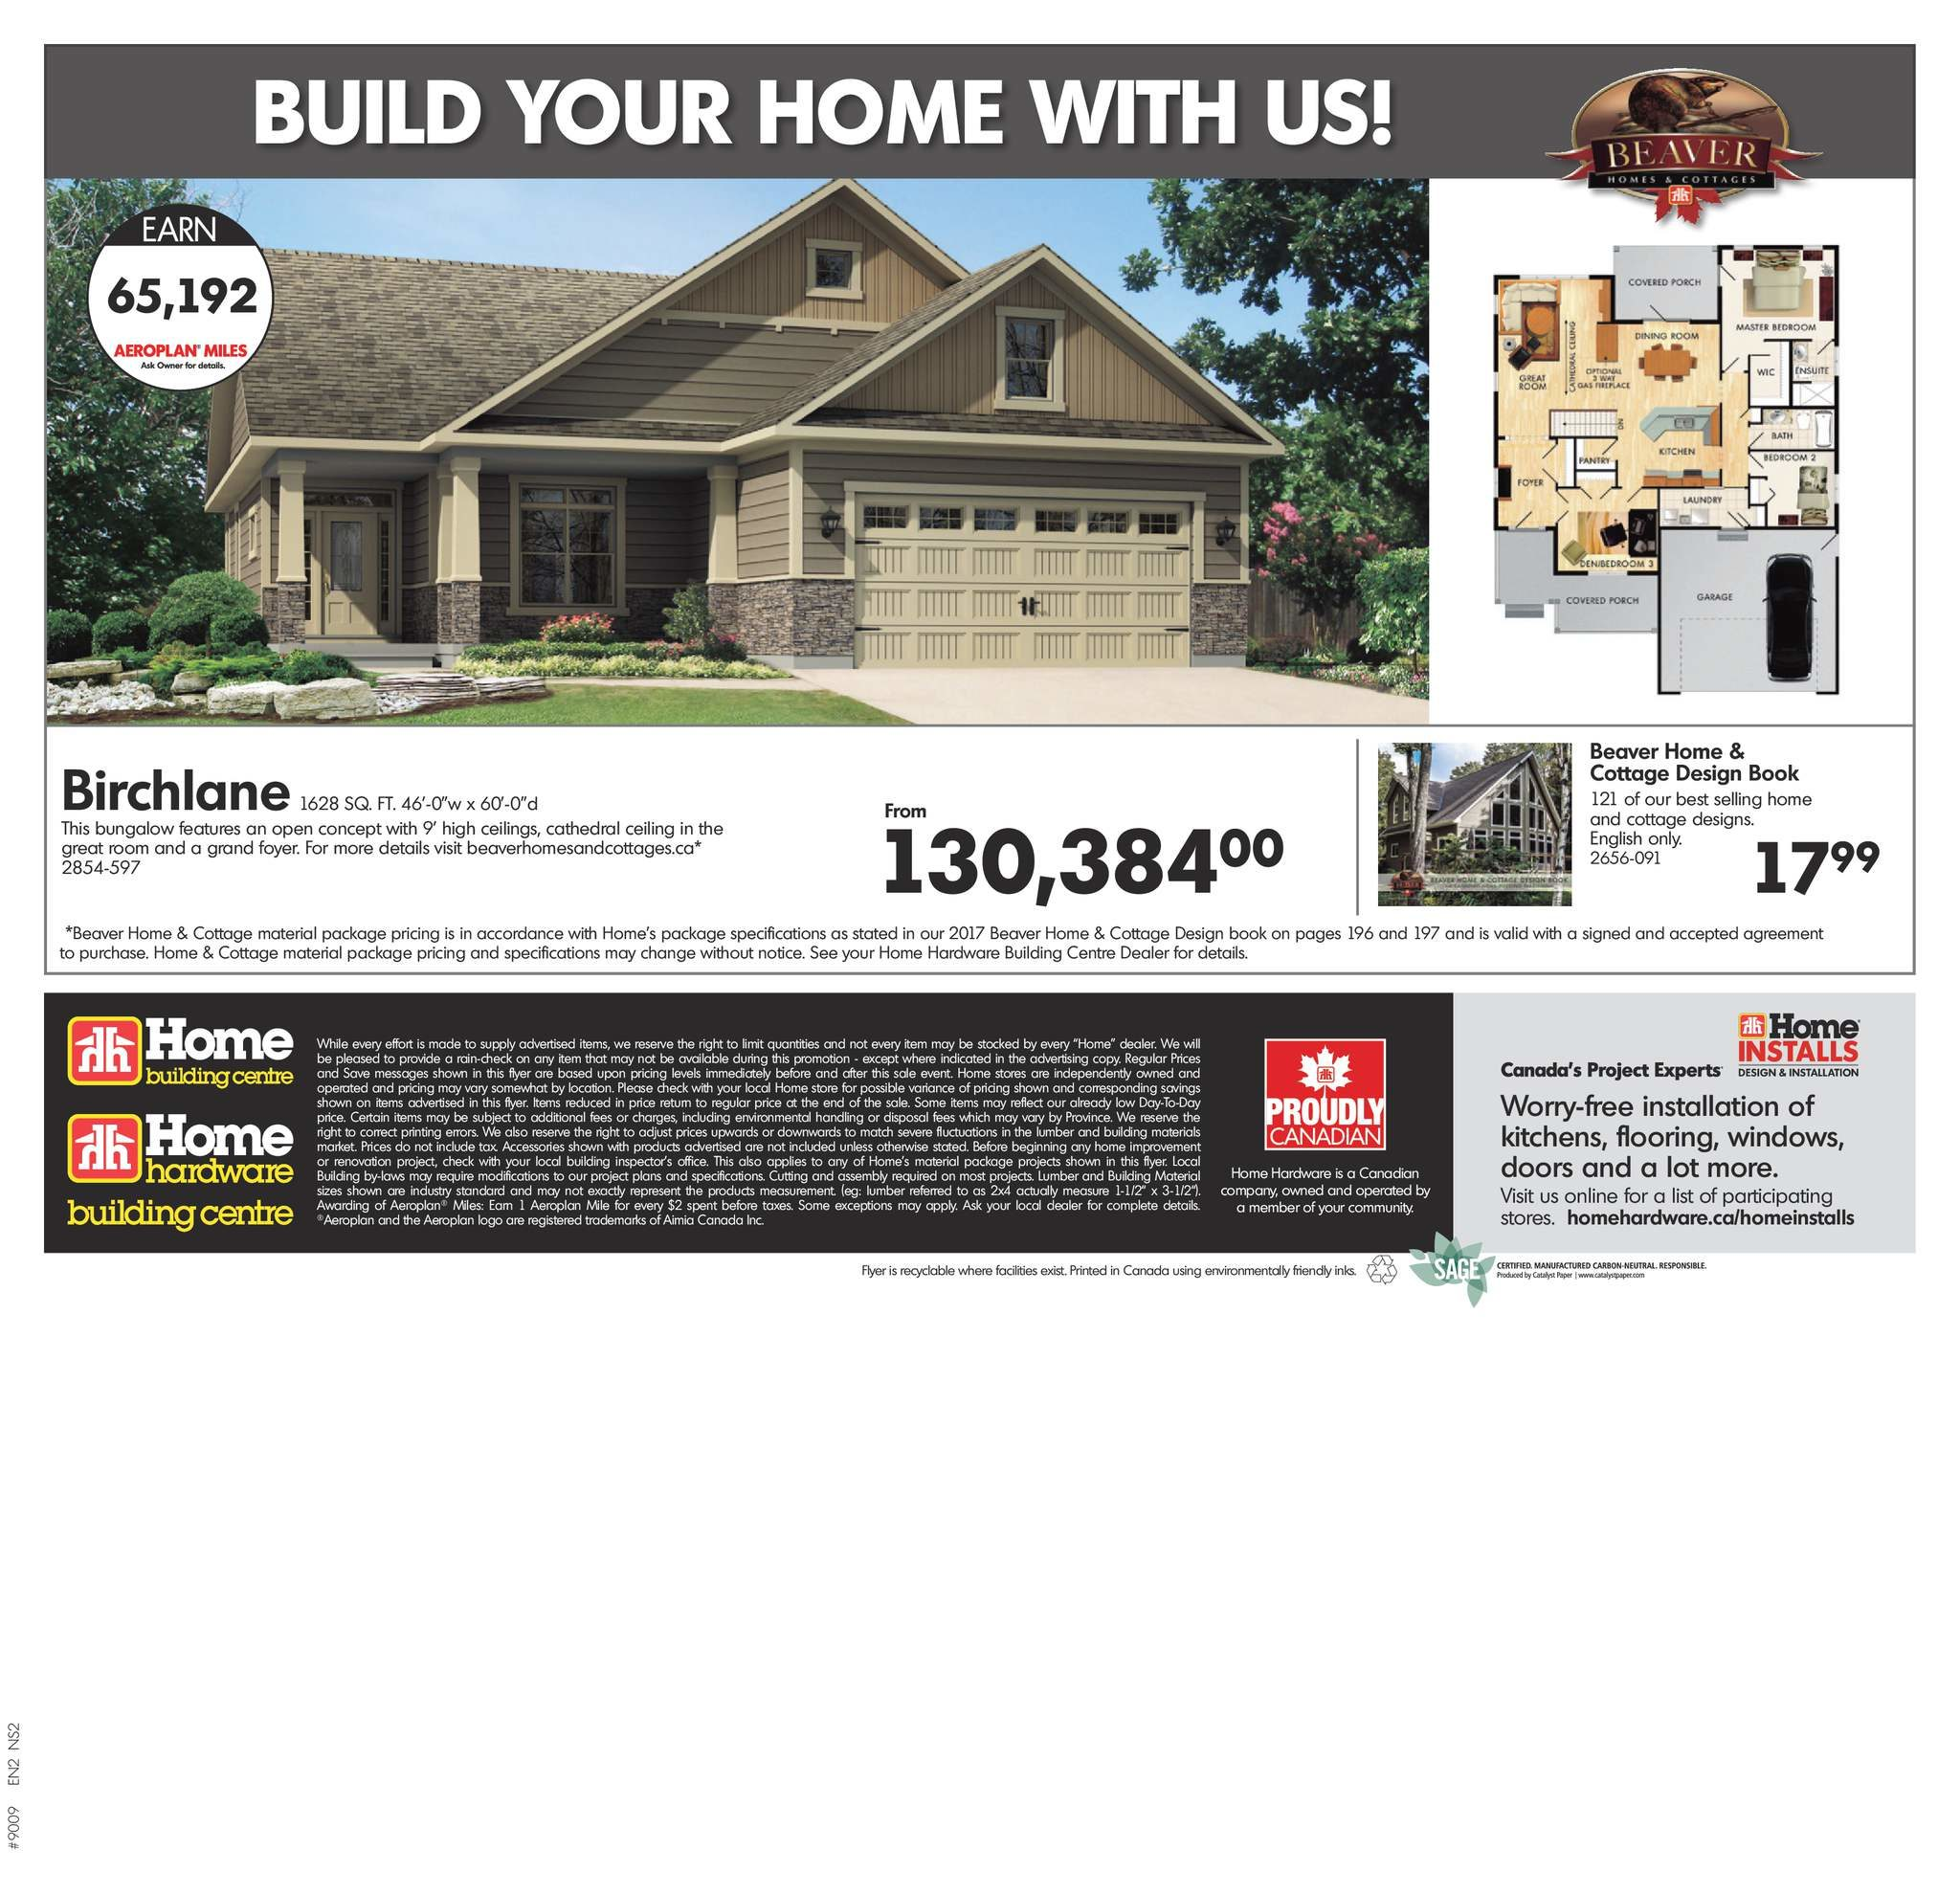 Home Hardware Weekly Flyer - Building Centre - Weekend Warrior Sale ...